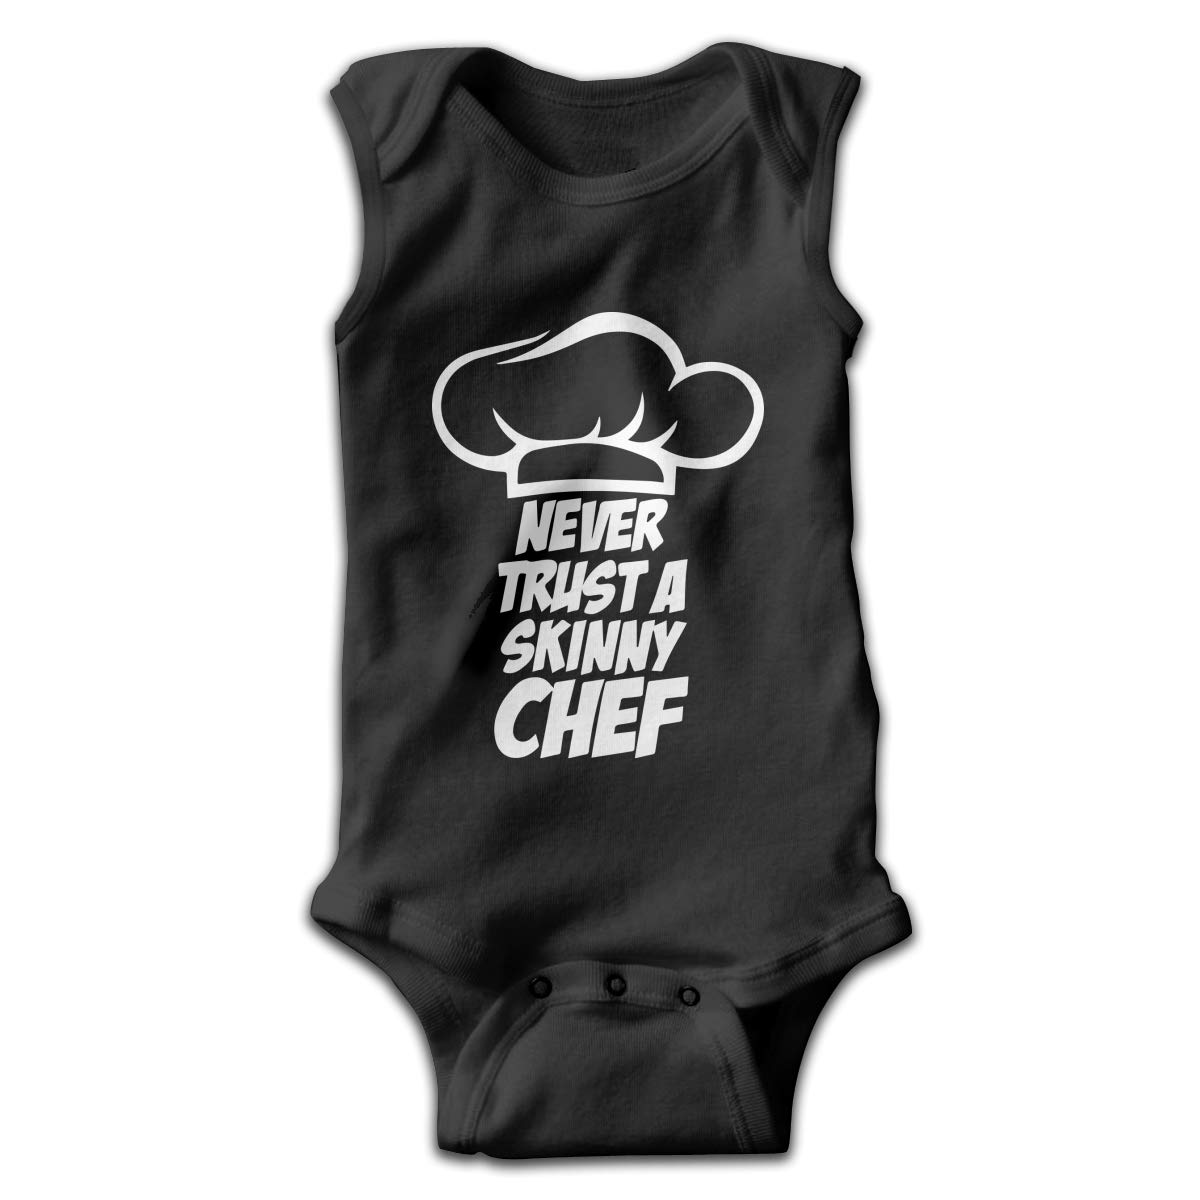 Toddler Never Trust A Skinny Chef 1 Sleeveless Baby Clothes Playsuit Suit 0-24 Months